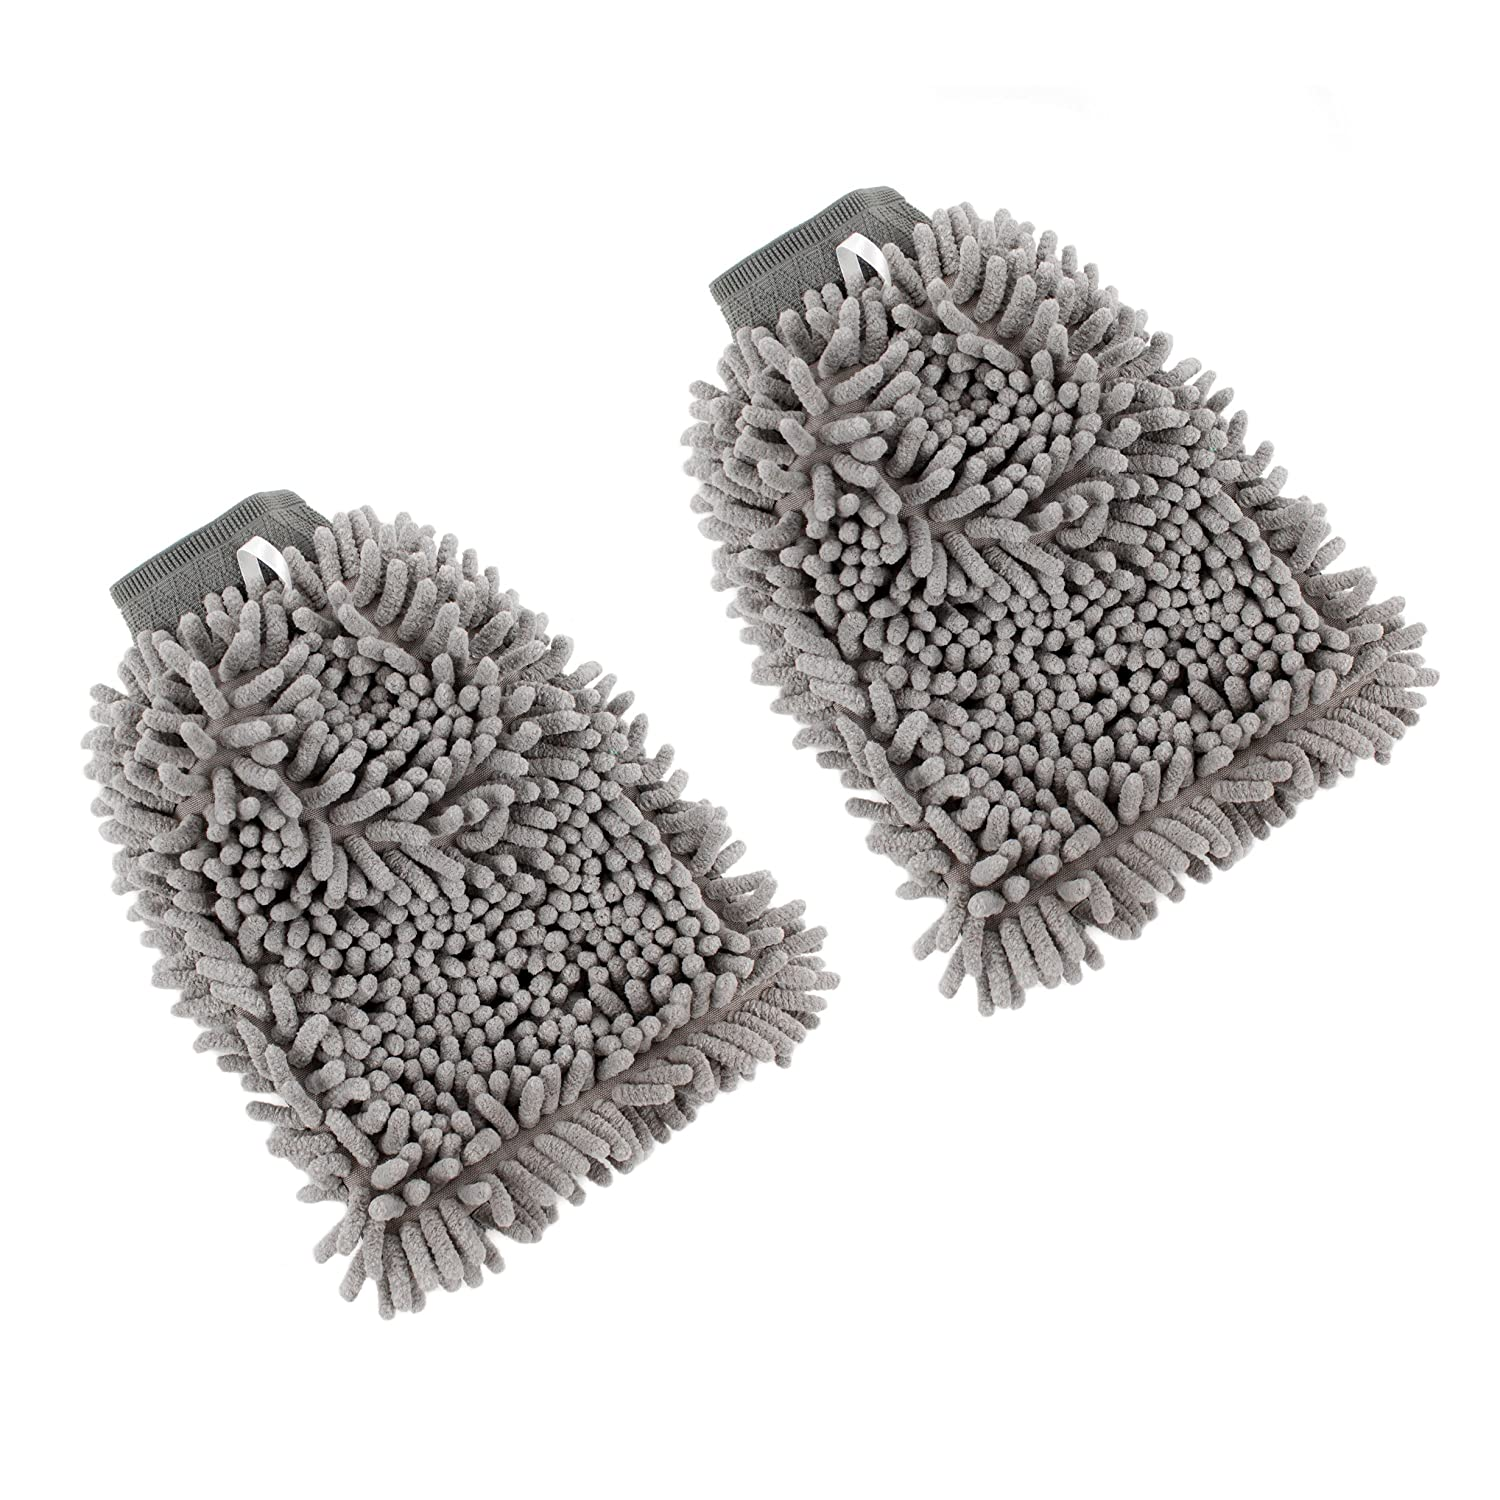 Zwipes Auto 886-2 Professional Microfiber 3-in-1 Car Wash Mitt, 2-Pack